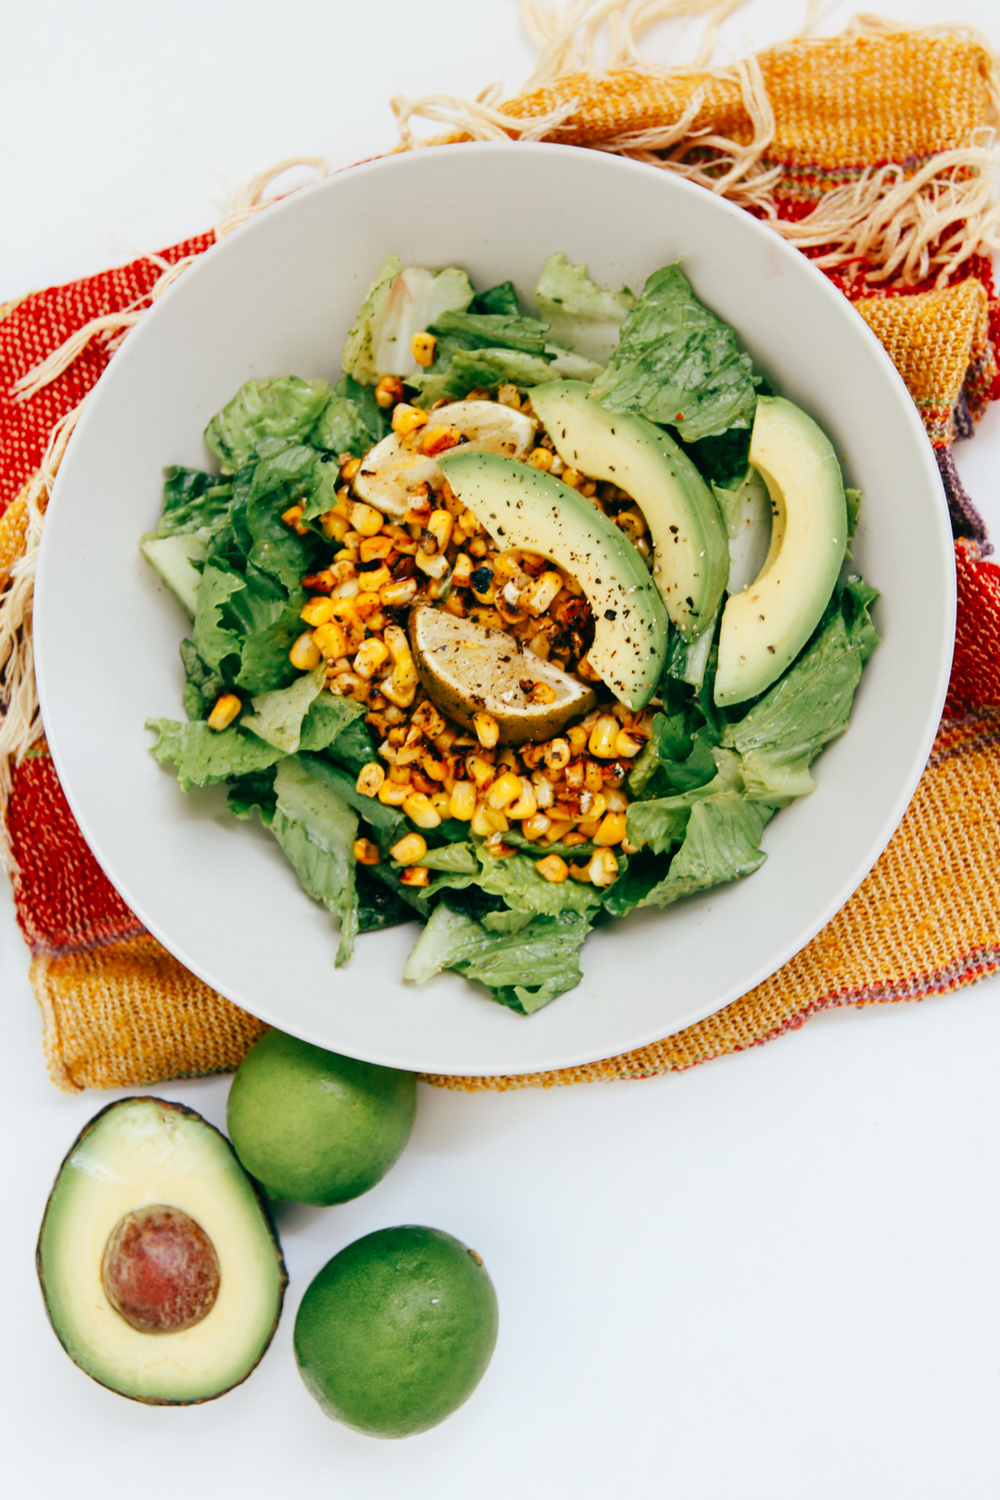 Grilled corn salad with dairy-free cilantro dressing | DesignComb